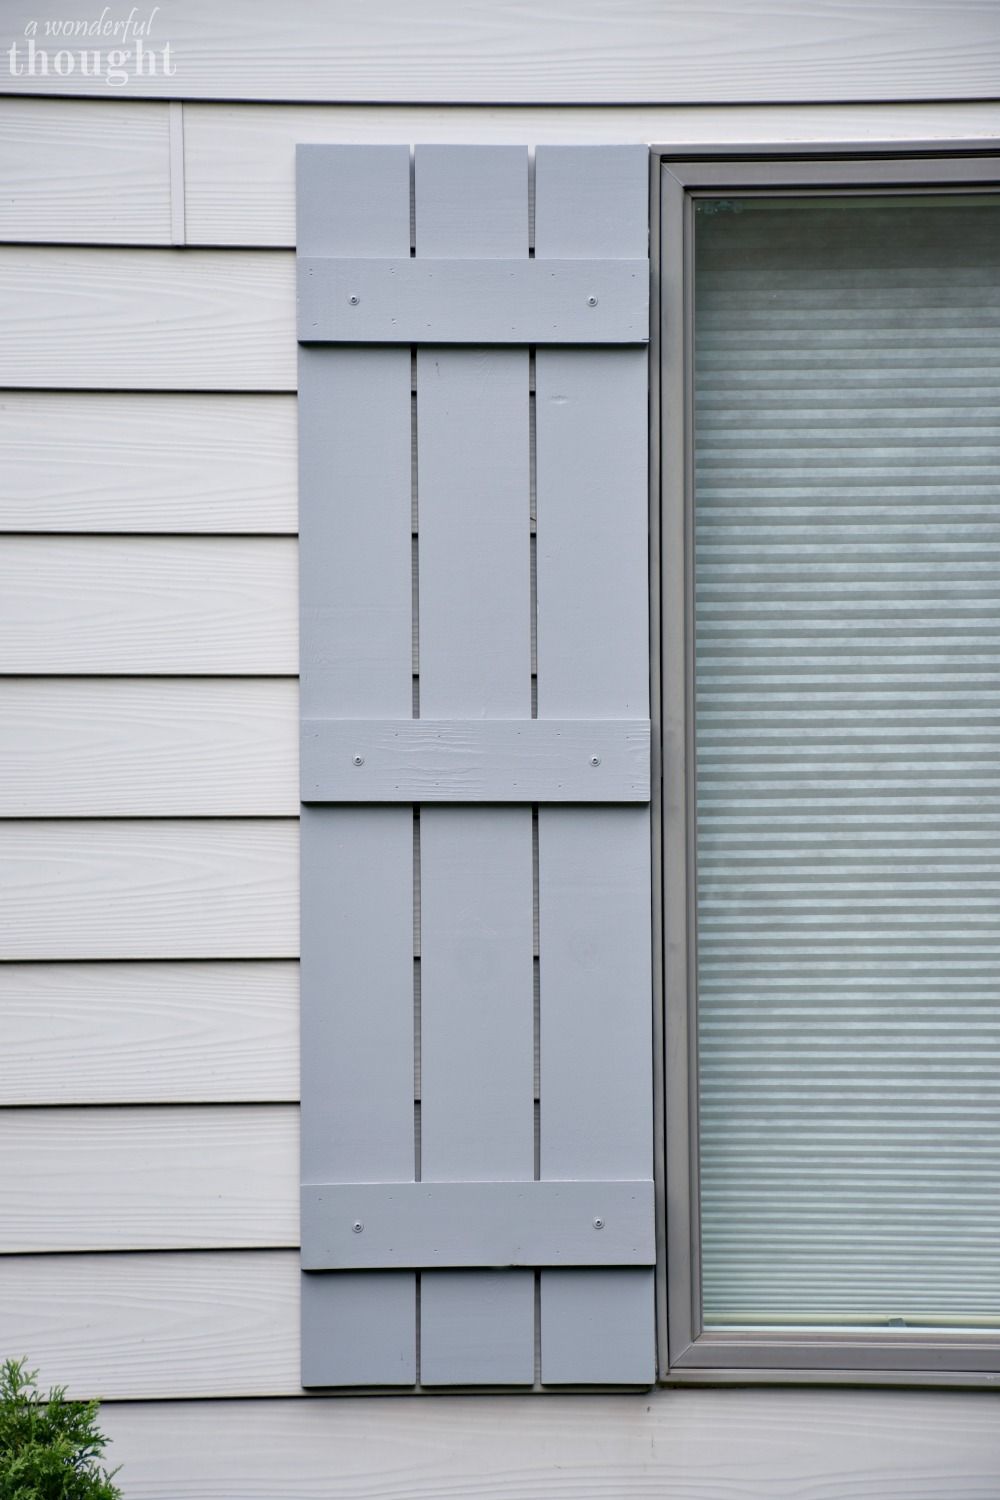 DIY Craftsman Style Board and Batten Shutters - A Wonderful Thought